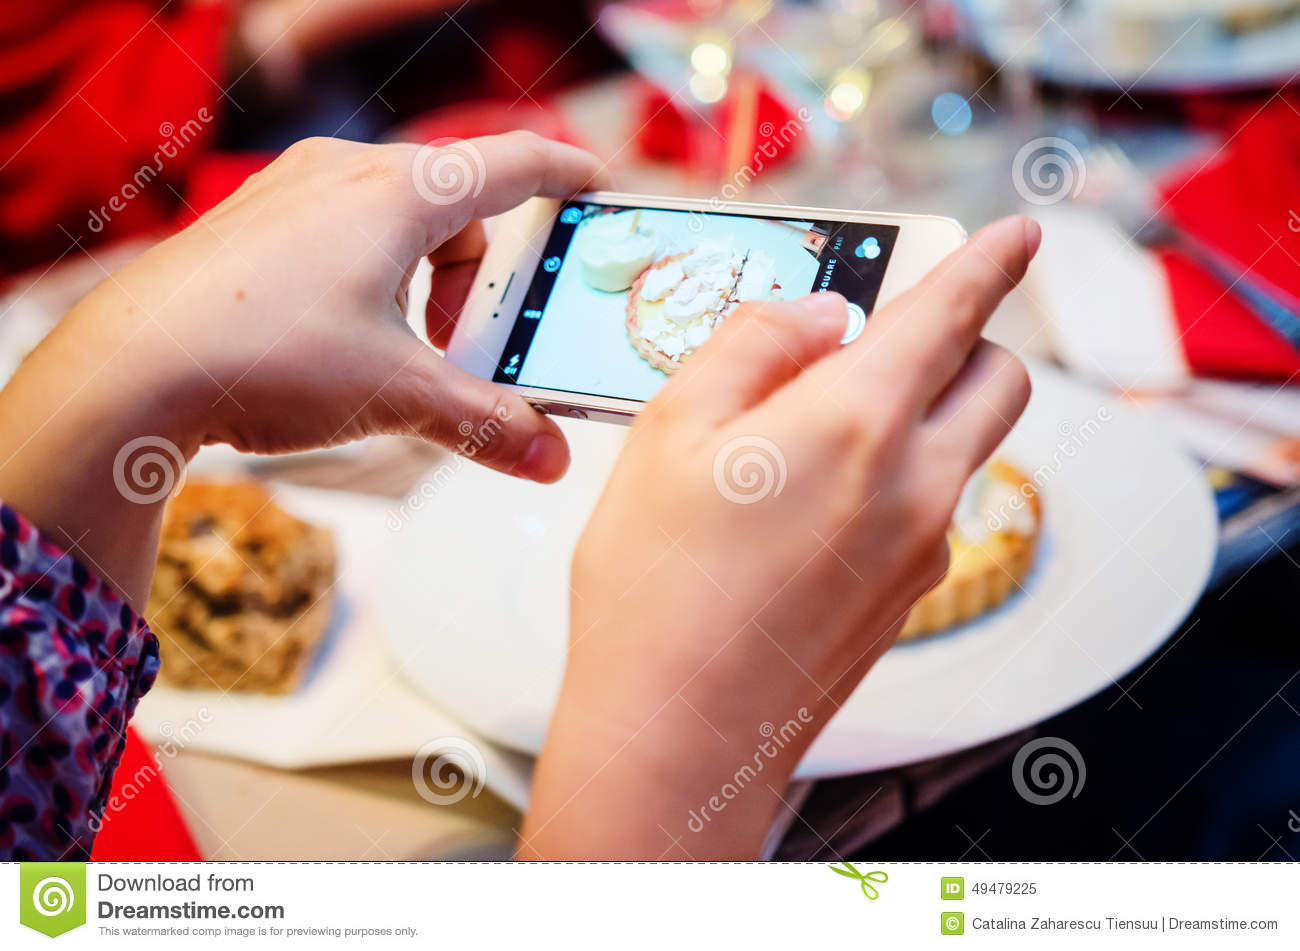 Photographing Food For Restaurant Menu